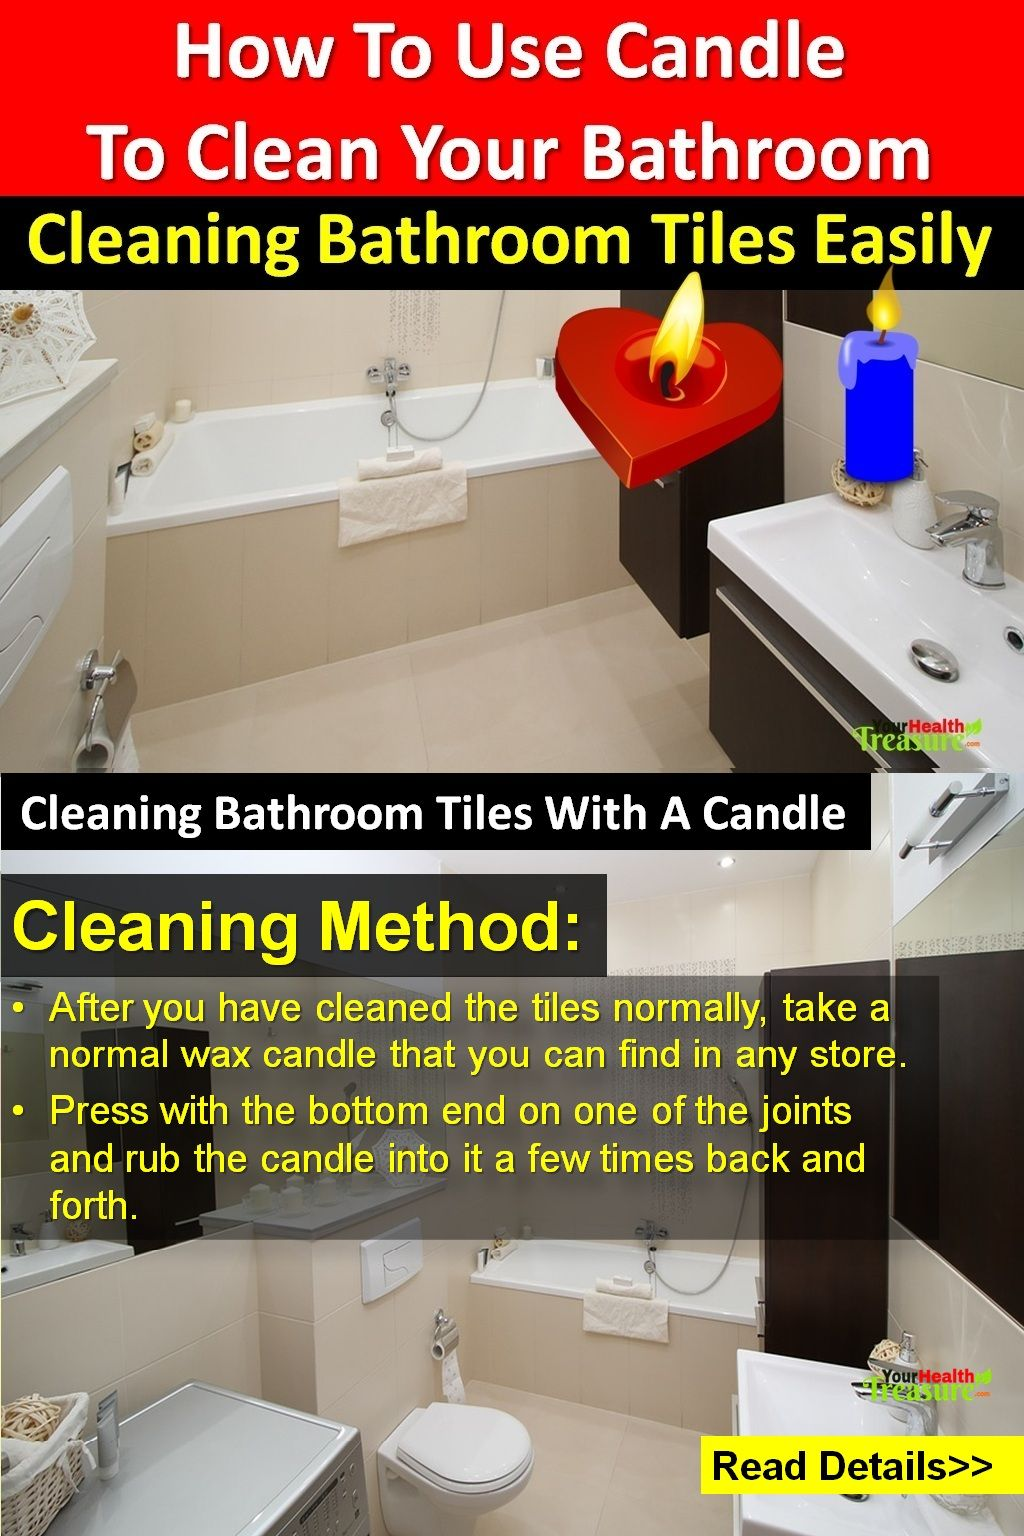 How To Use Candle To Clean Your Bathroom Clean Bathroom Tiles - What to use to clean bathroom